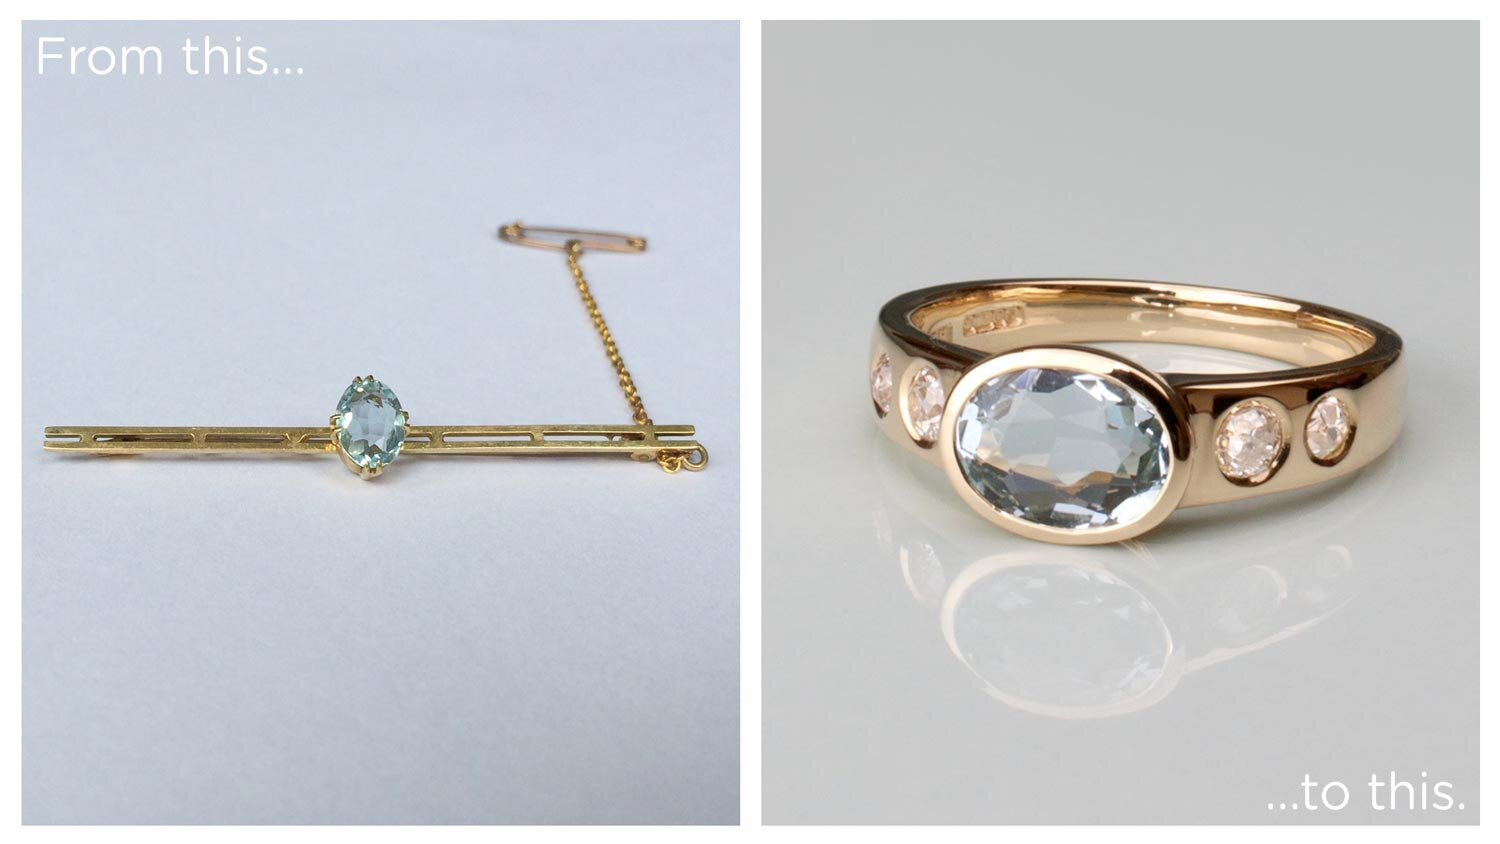 From-this-to-this-gold-aquamarine-brooch.jpg